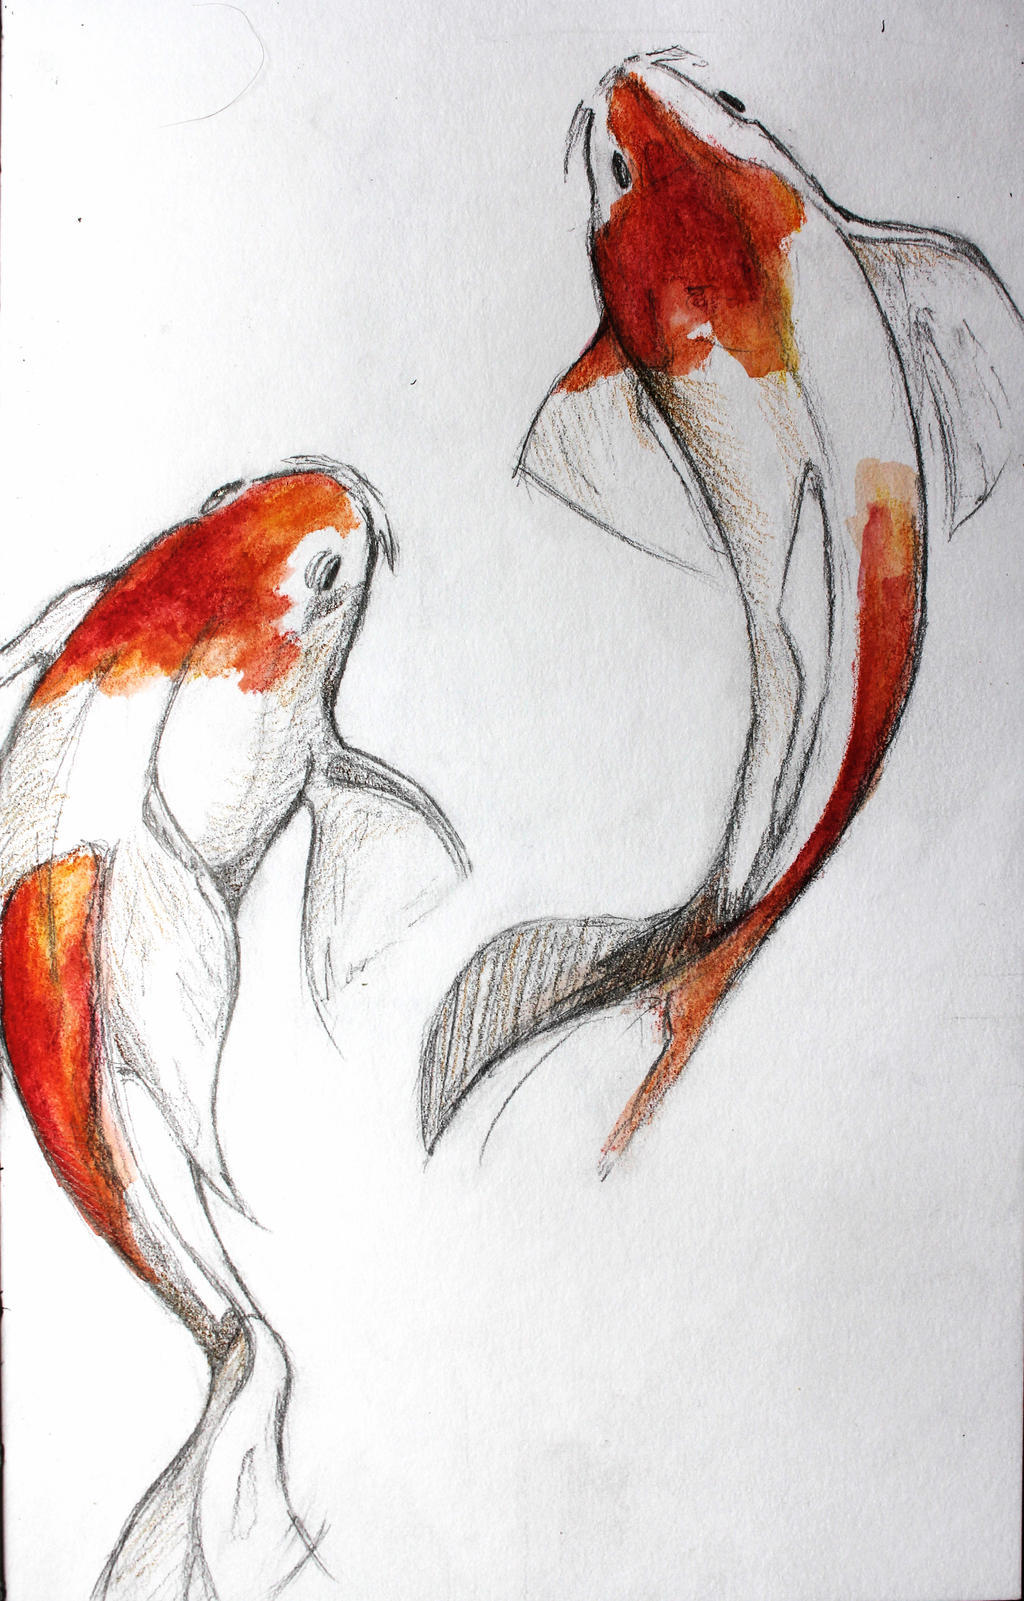 Koi fish by lulupapercranes on deviantart for Koi fish images